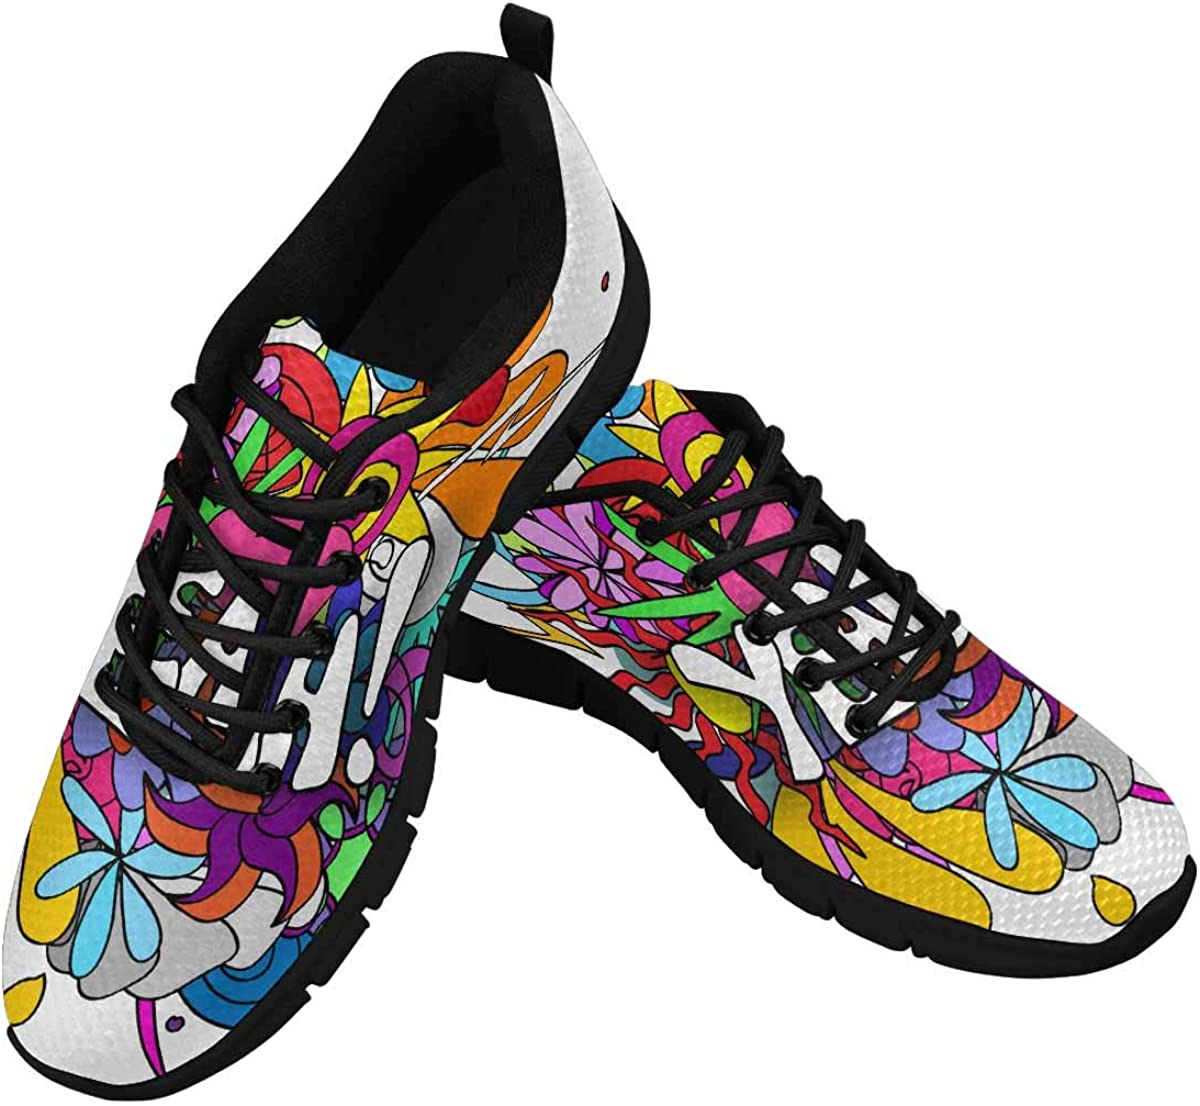 INTERESTPRINT Yeah Doodles Women's Running Shoes Mesh Breathable Sports Casual Shoes